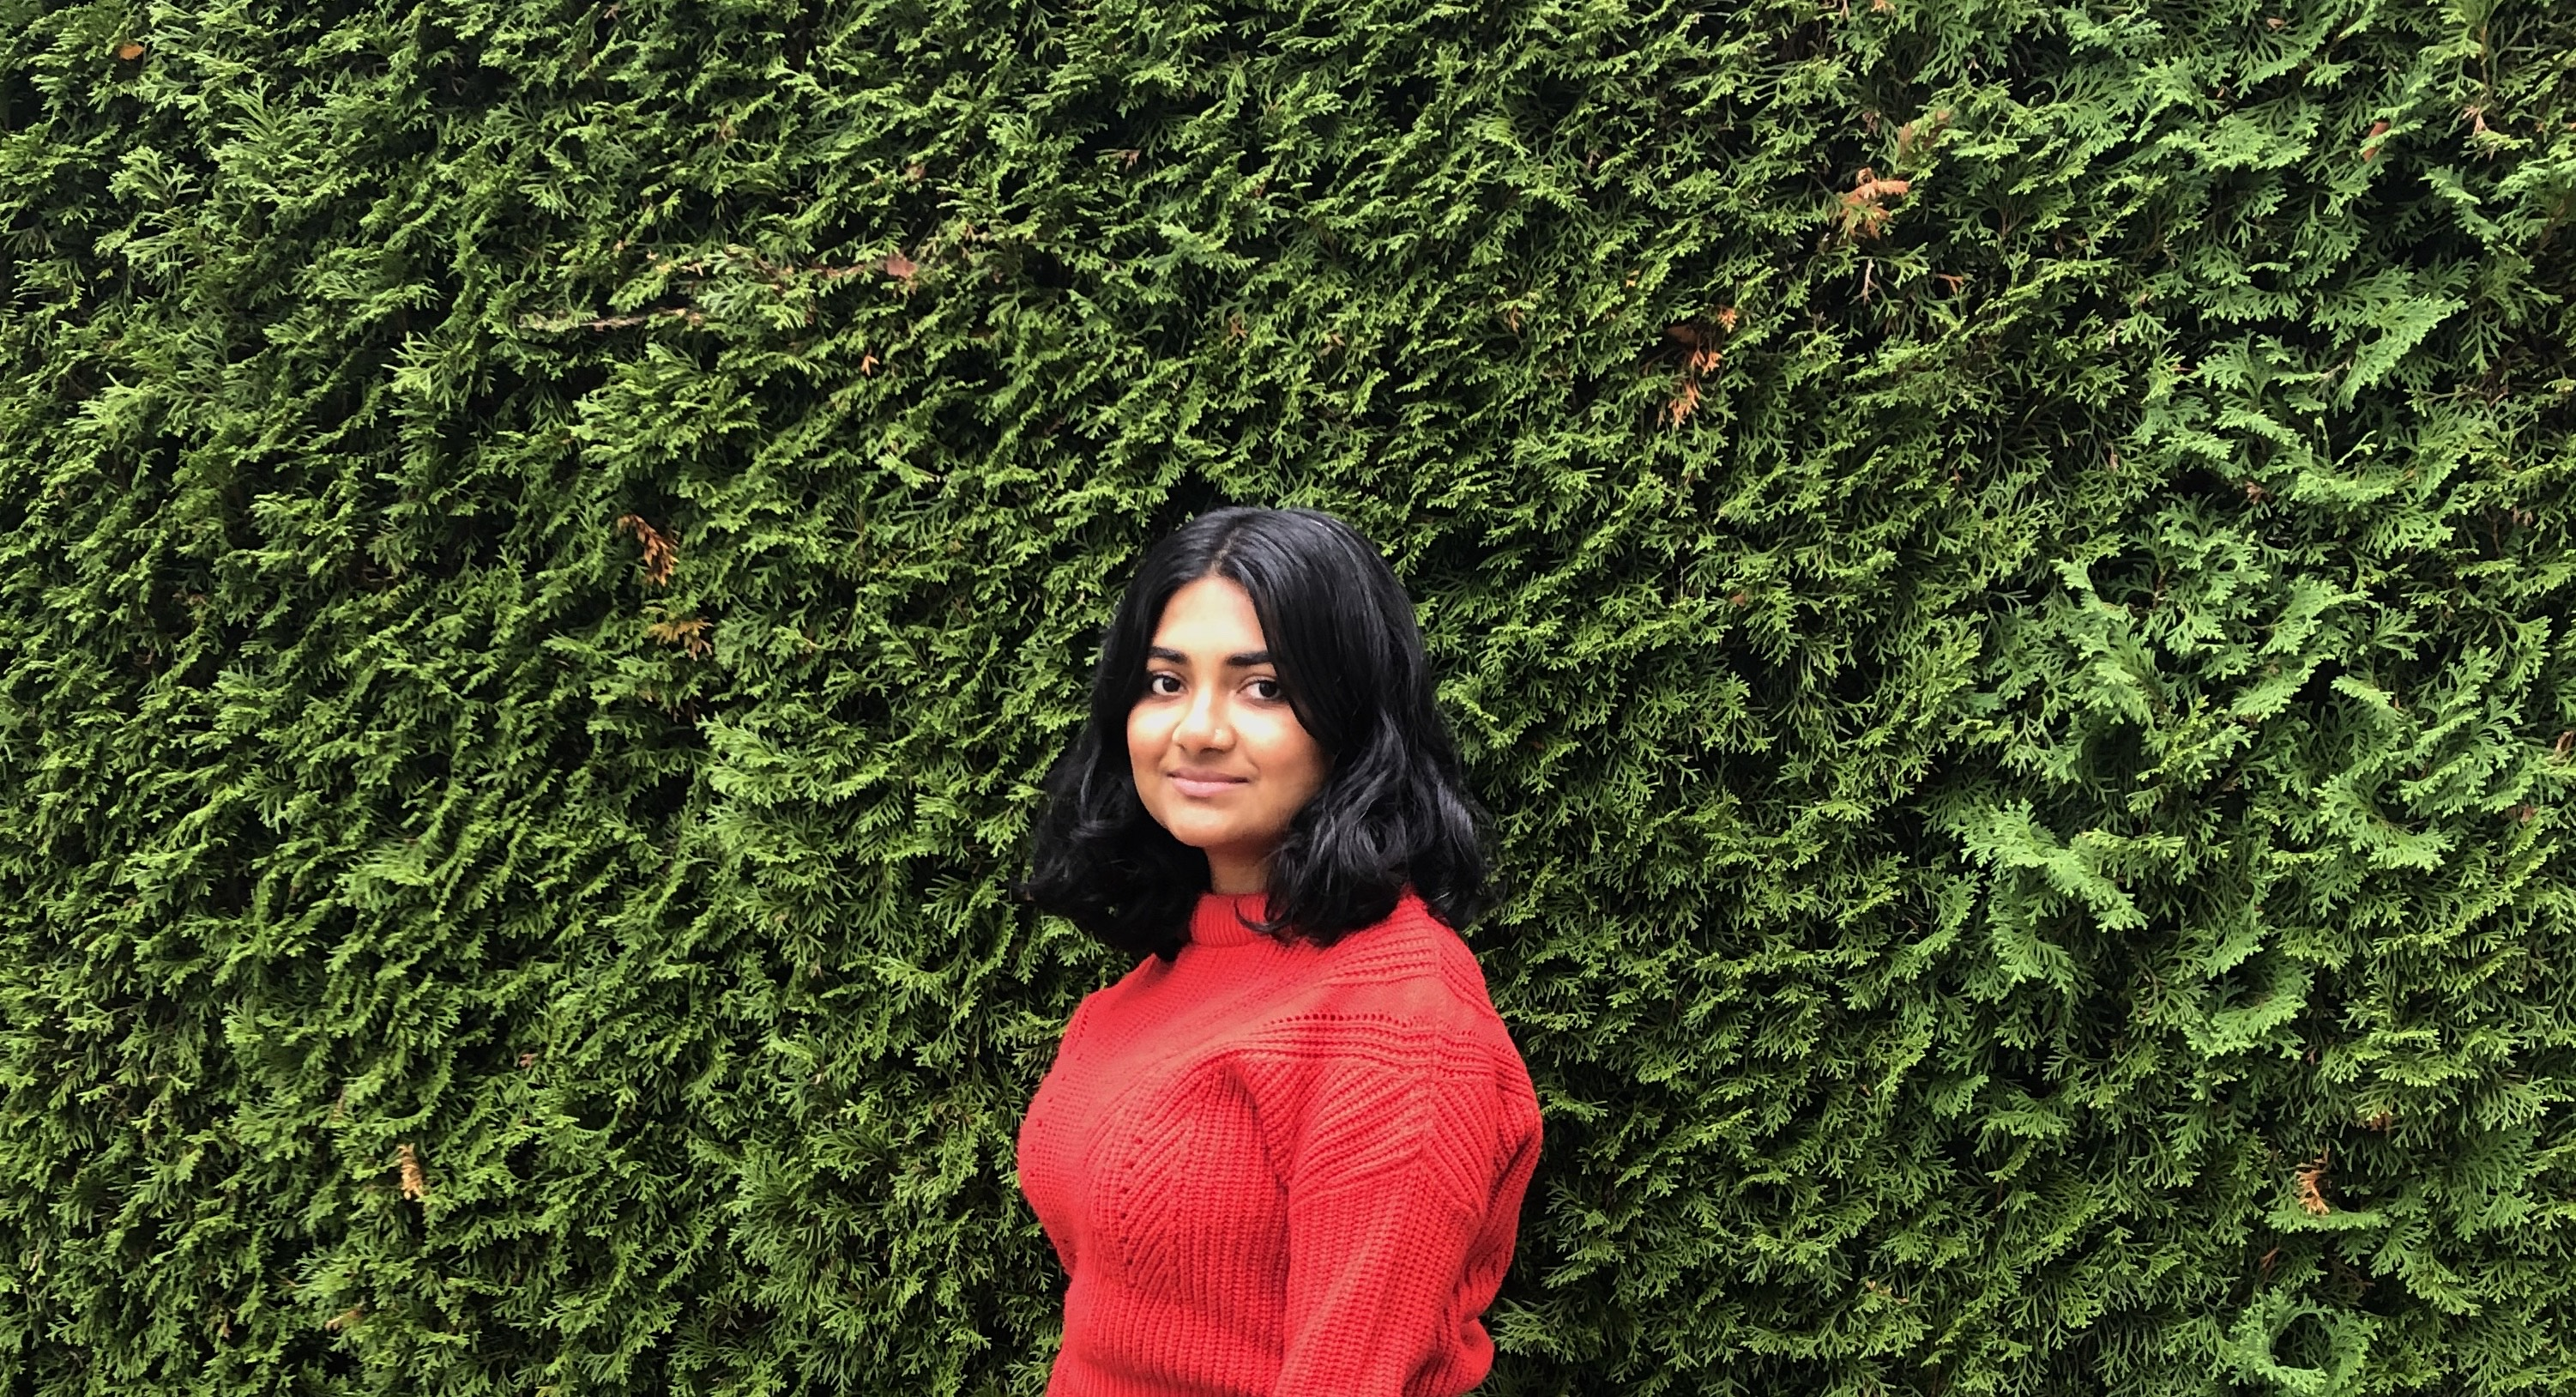 Hina wears a red sweater and stands in front of a hedge